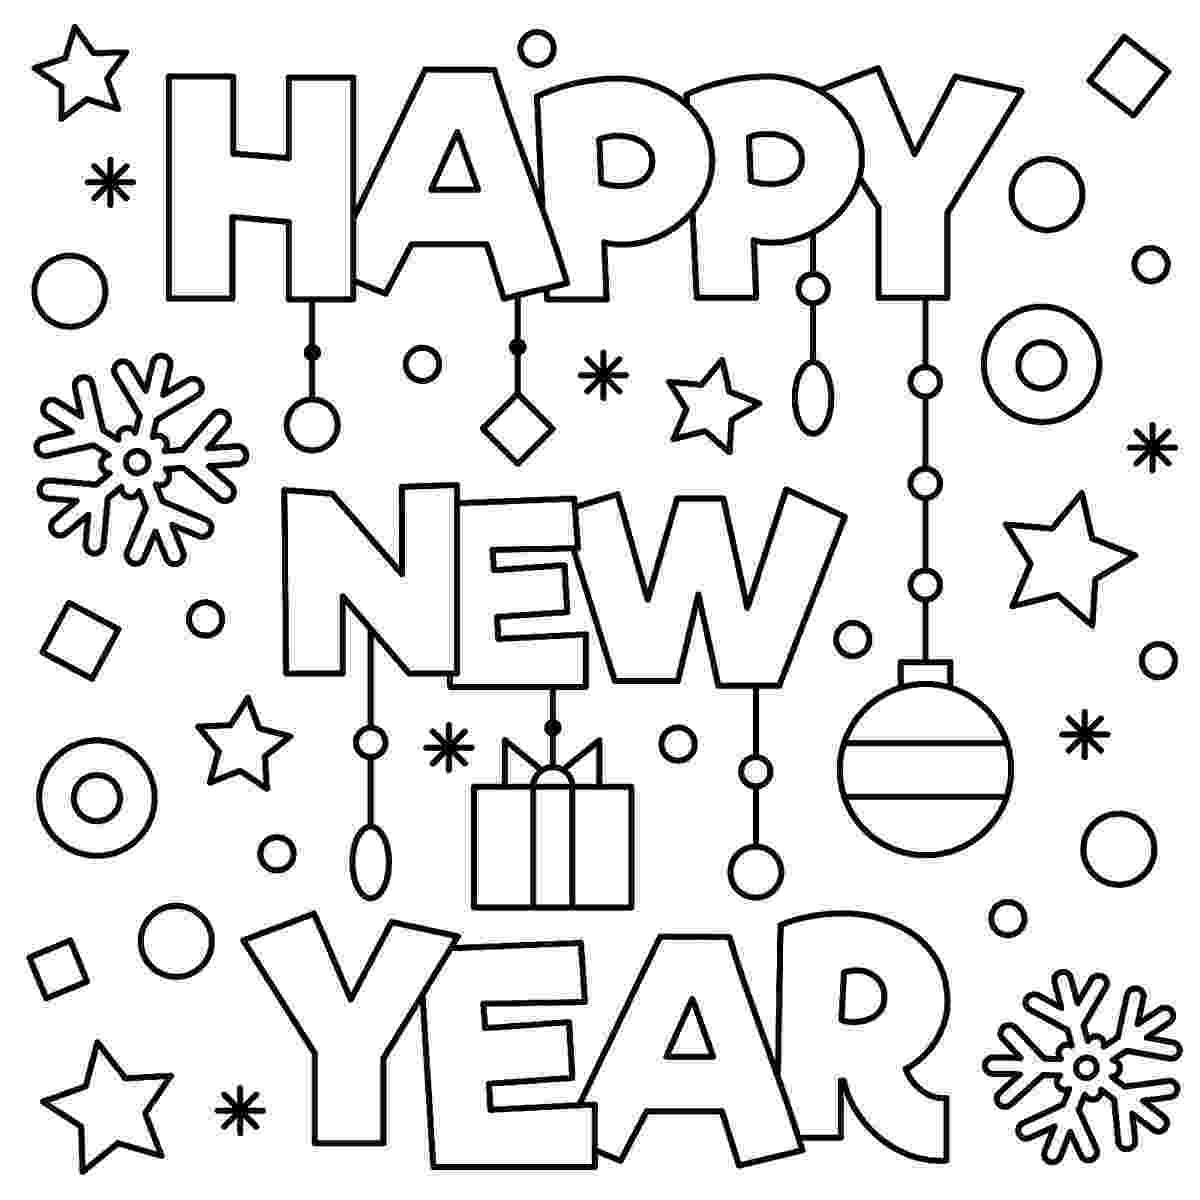 printable coloring pages new years eve new years eve coloring pages tip junkie pages eve coloring years new printable